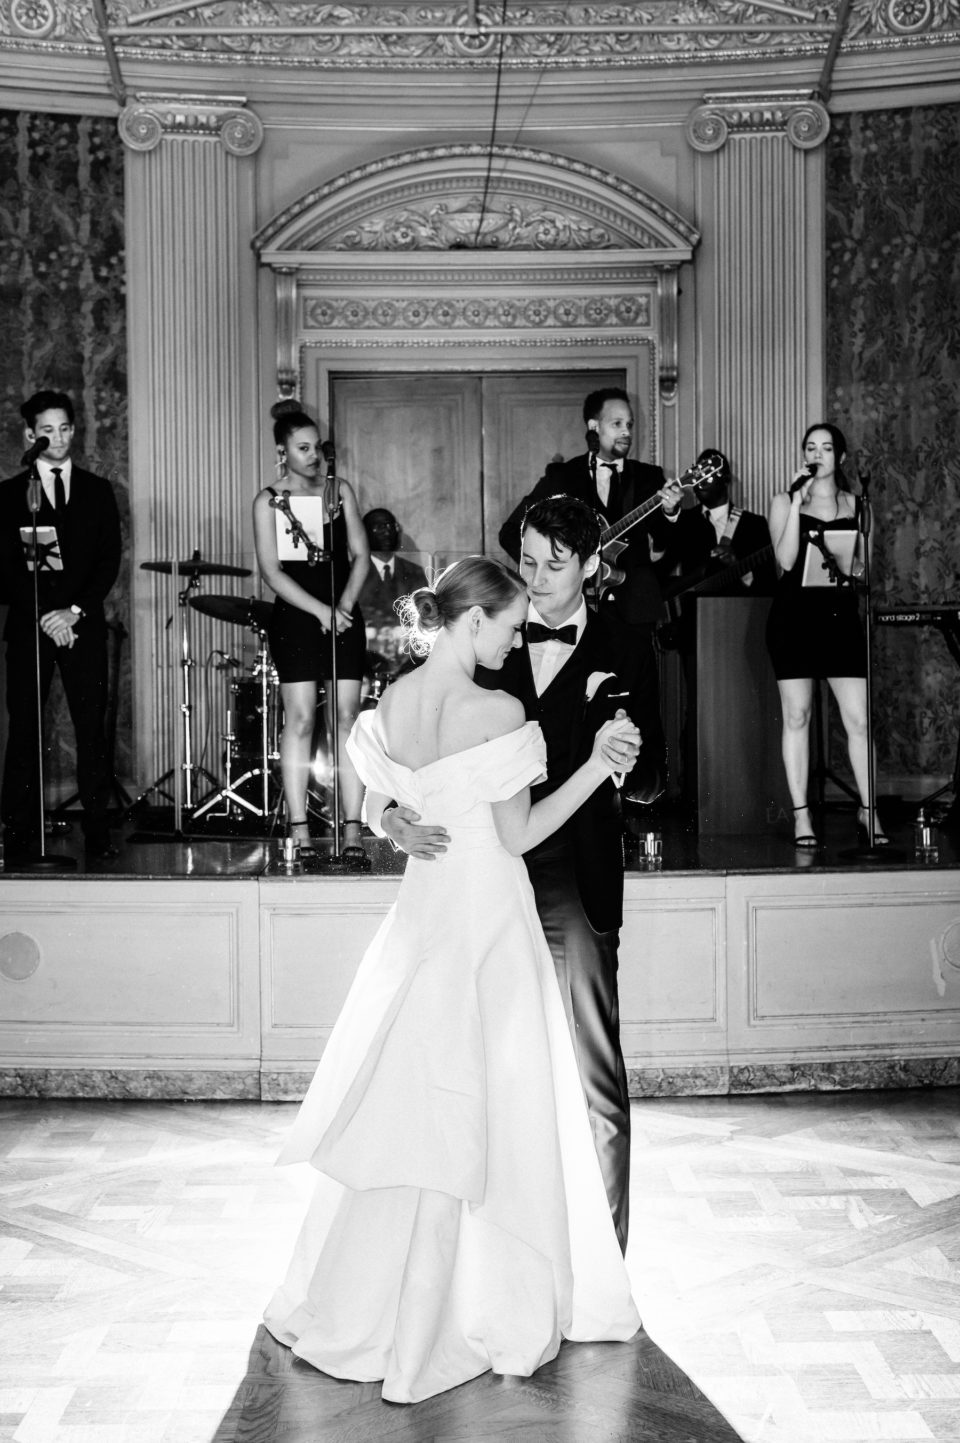 wedding at the frick collection first dance black and white photo